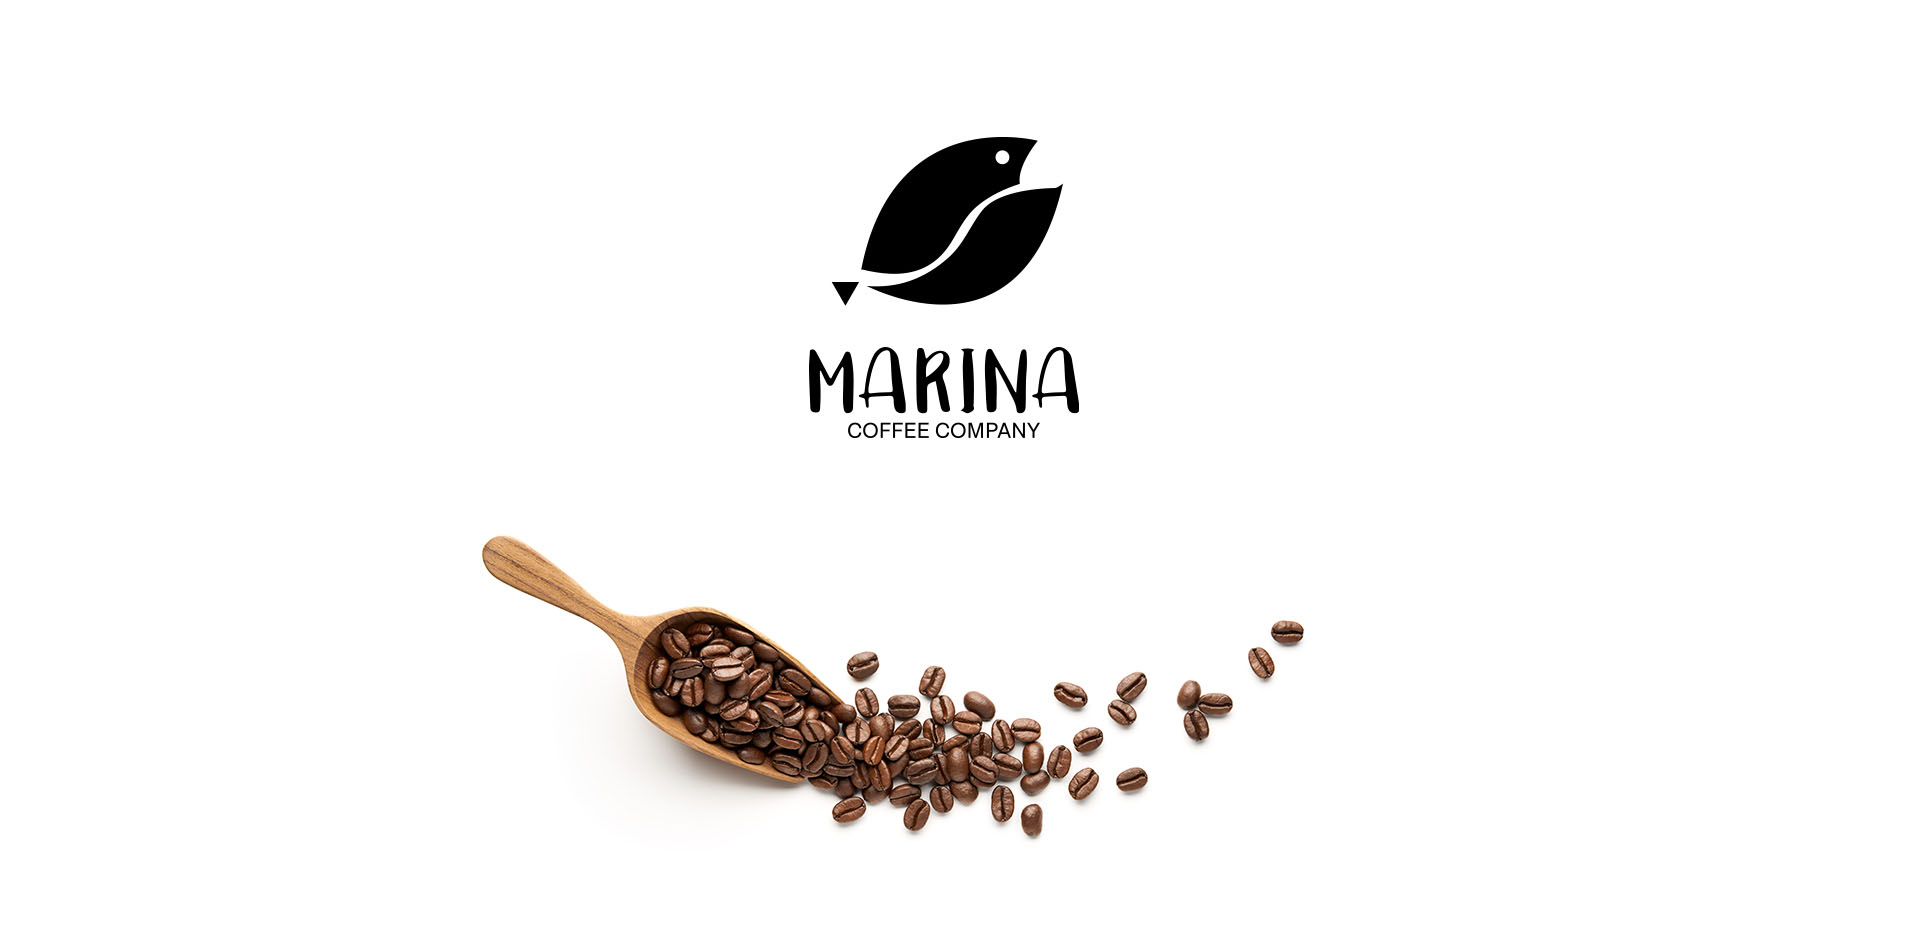 Logo design for a coffee company and beans